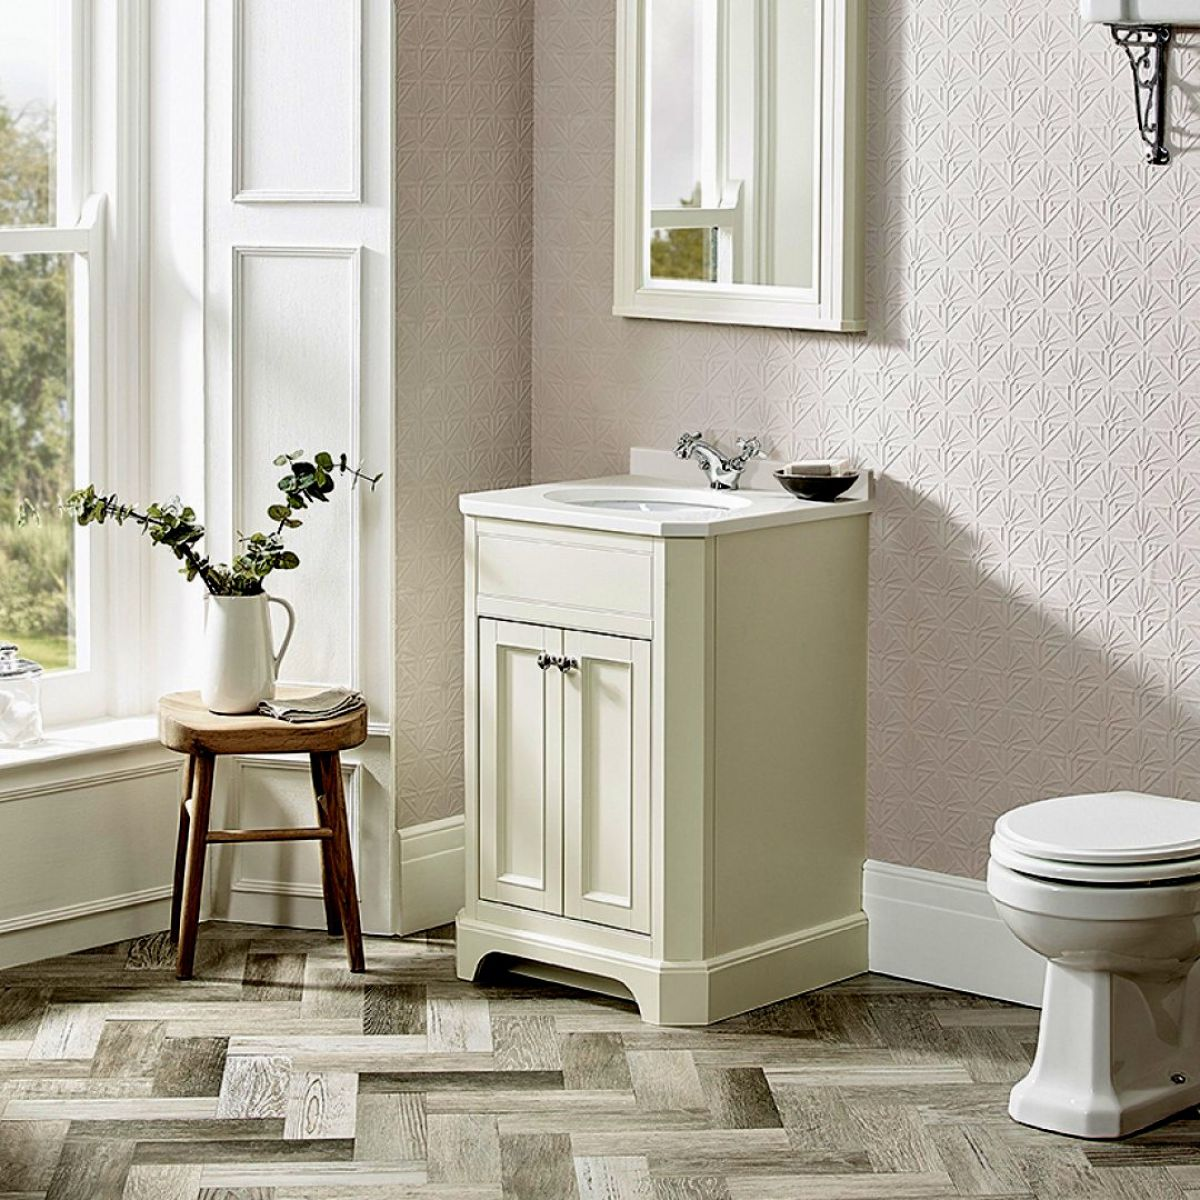 image example of freestanding bathroom furniture